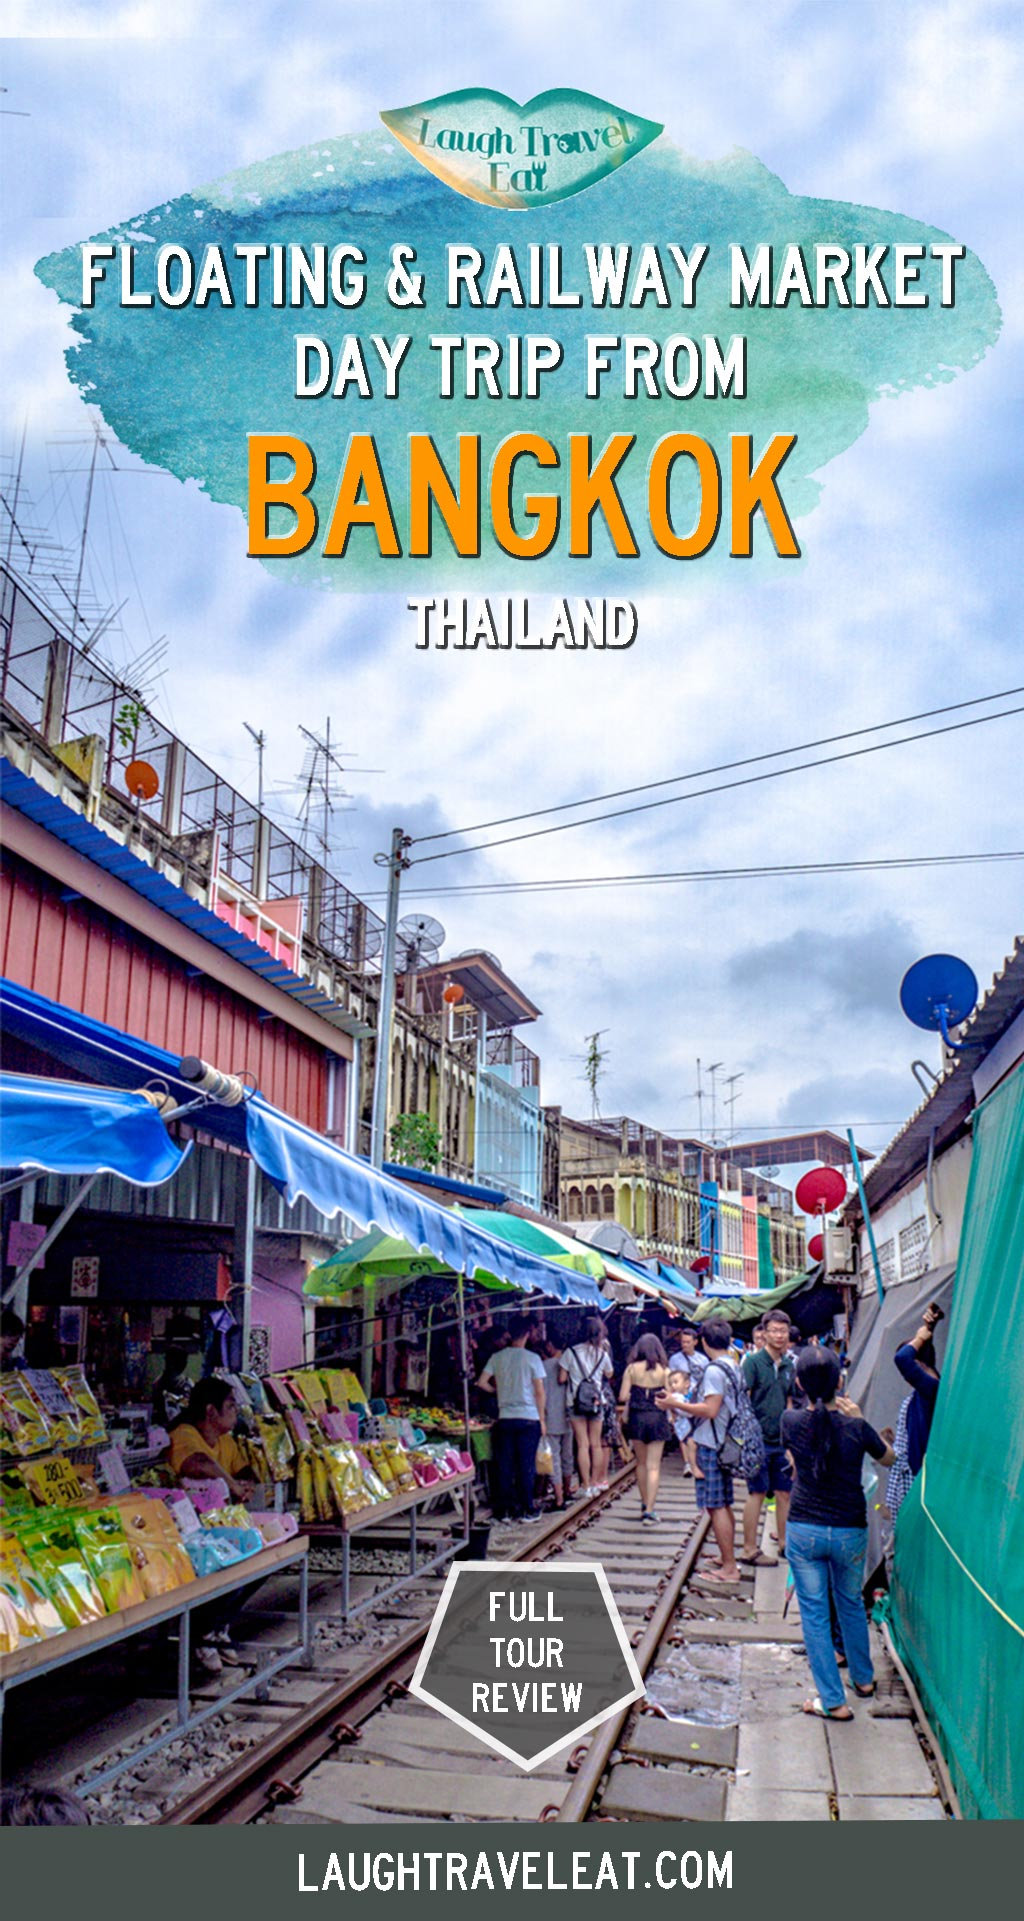 One of the most popular day trips from Bangkok is the floating market and the railway market. While there's only one railway market - the Maeklong Railway Market. Combine it with a visit to Amphawa Floating Market on a day trip and here's what a tour looks like: #bangkok #daytrip #floatingmarket #railwaymarket